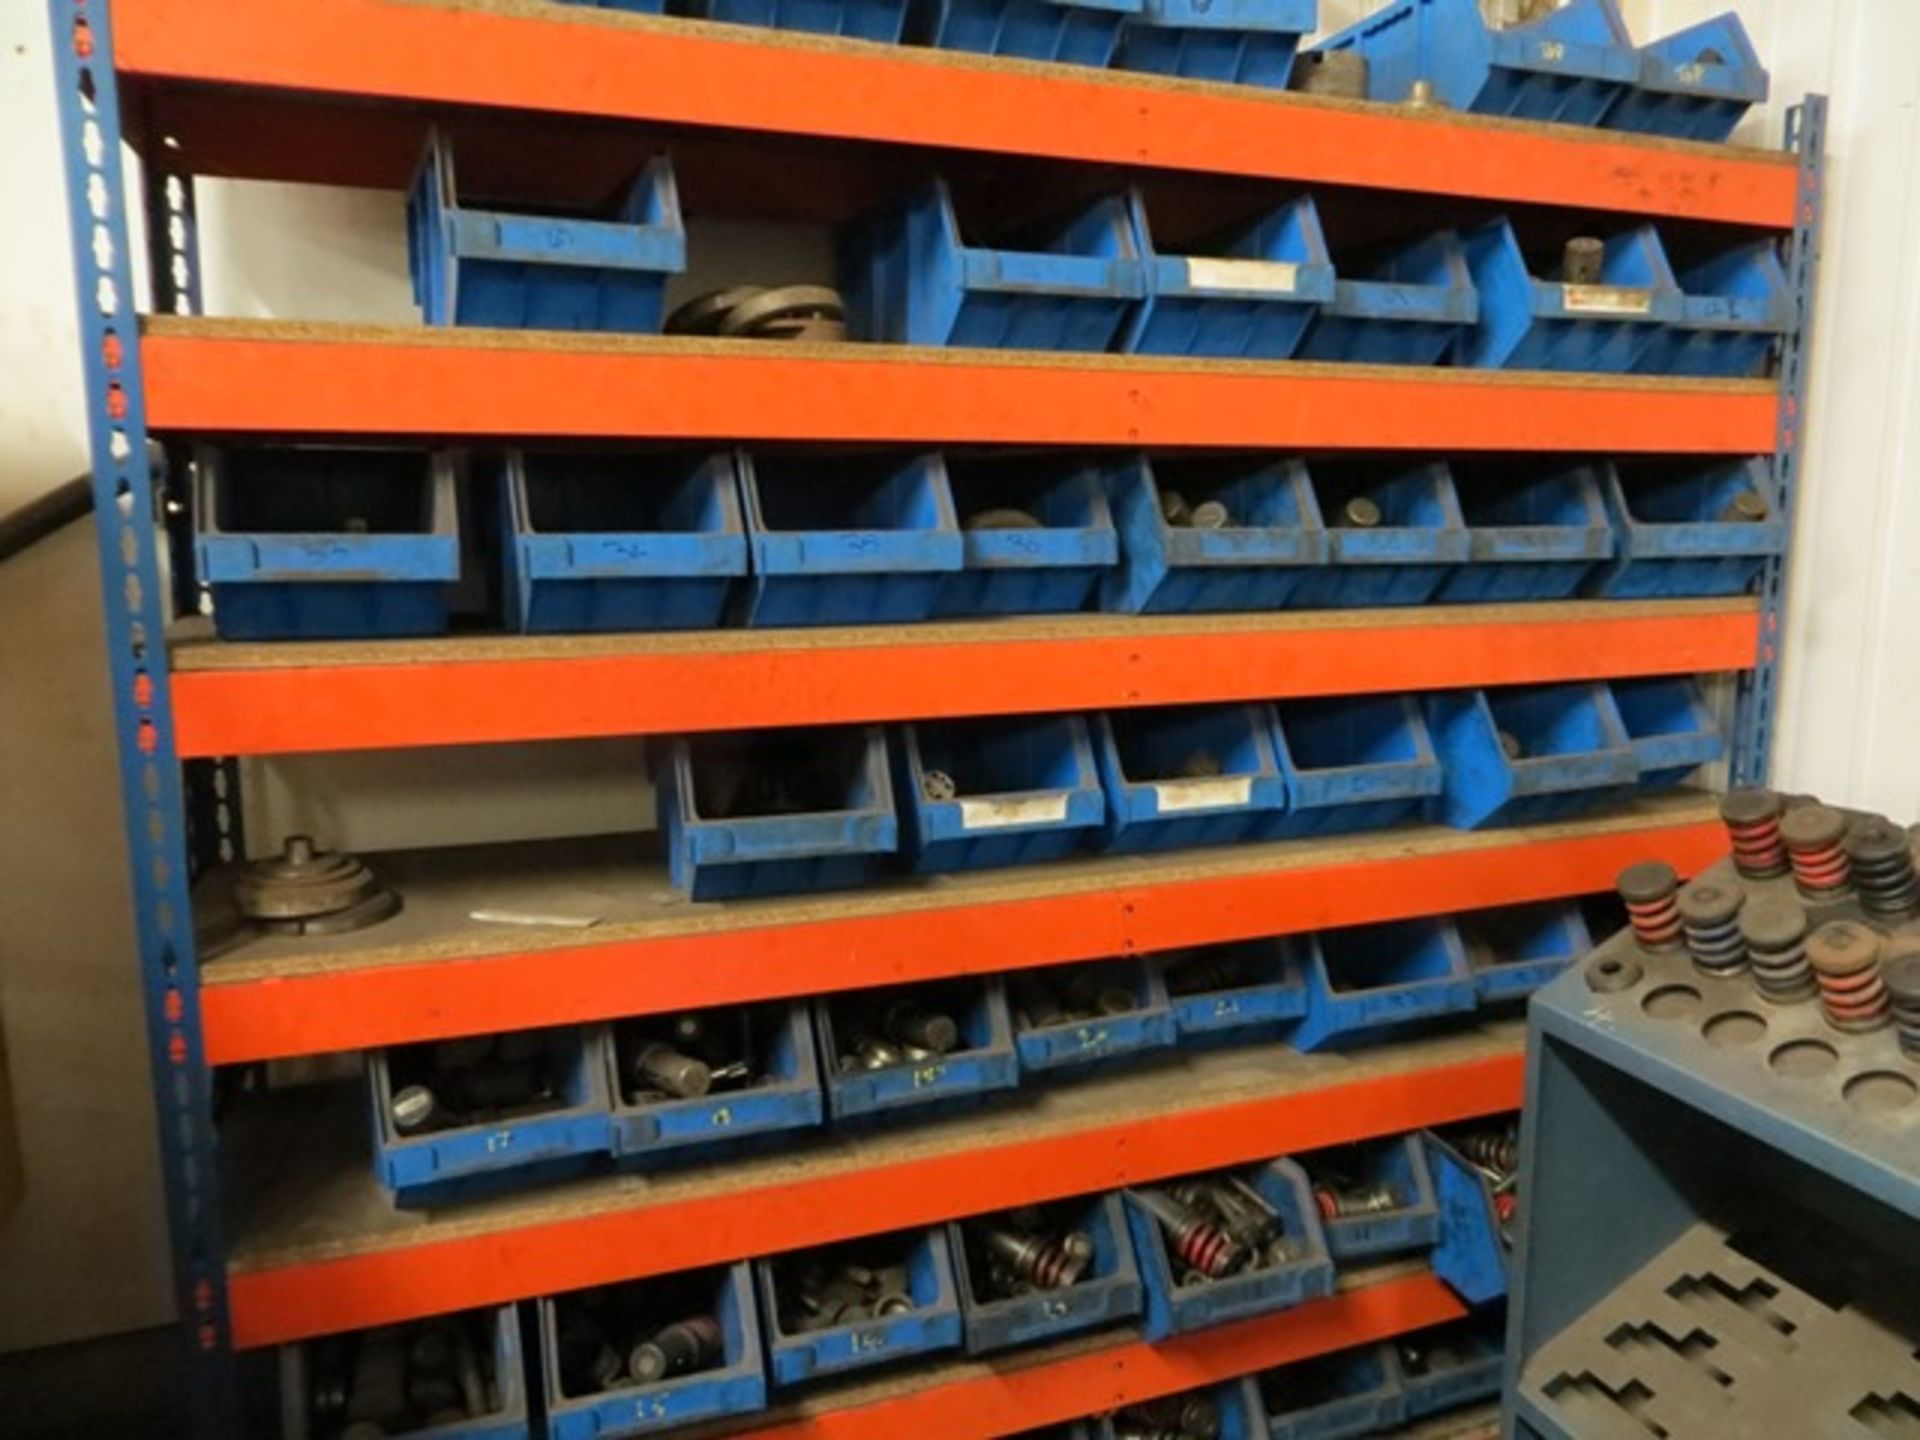 Lot 2 - Press & Shear Machinery Houdalille Strippit Numerically Controlled CAP 1000 Three Phase 18 Turret